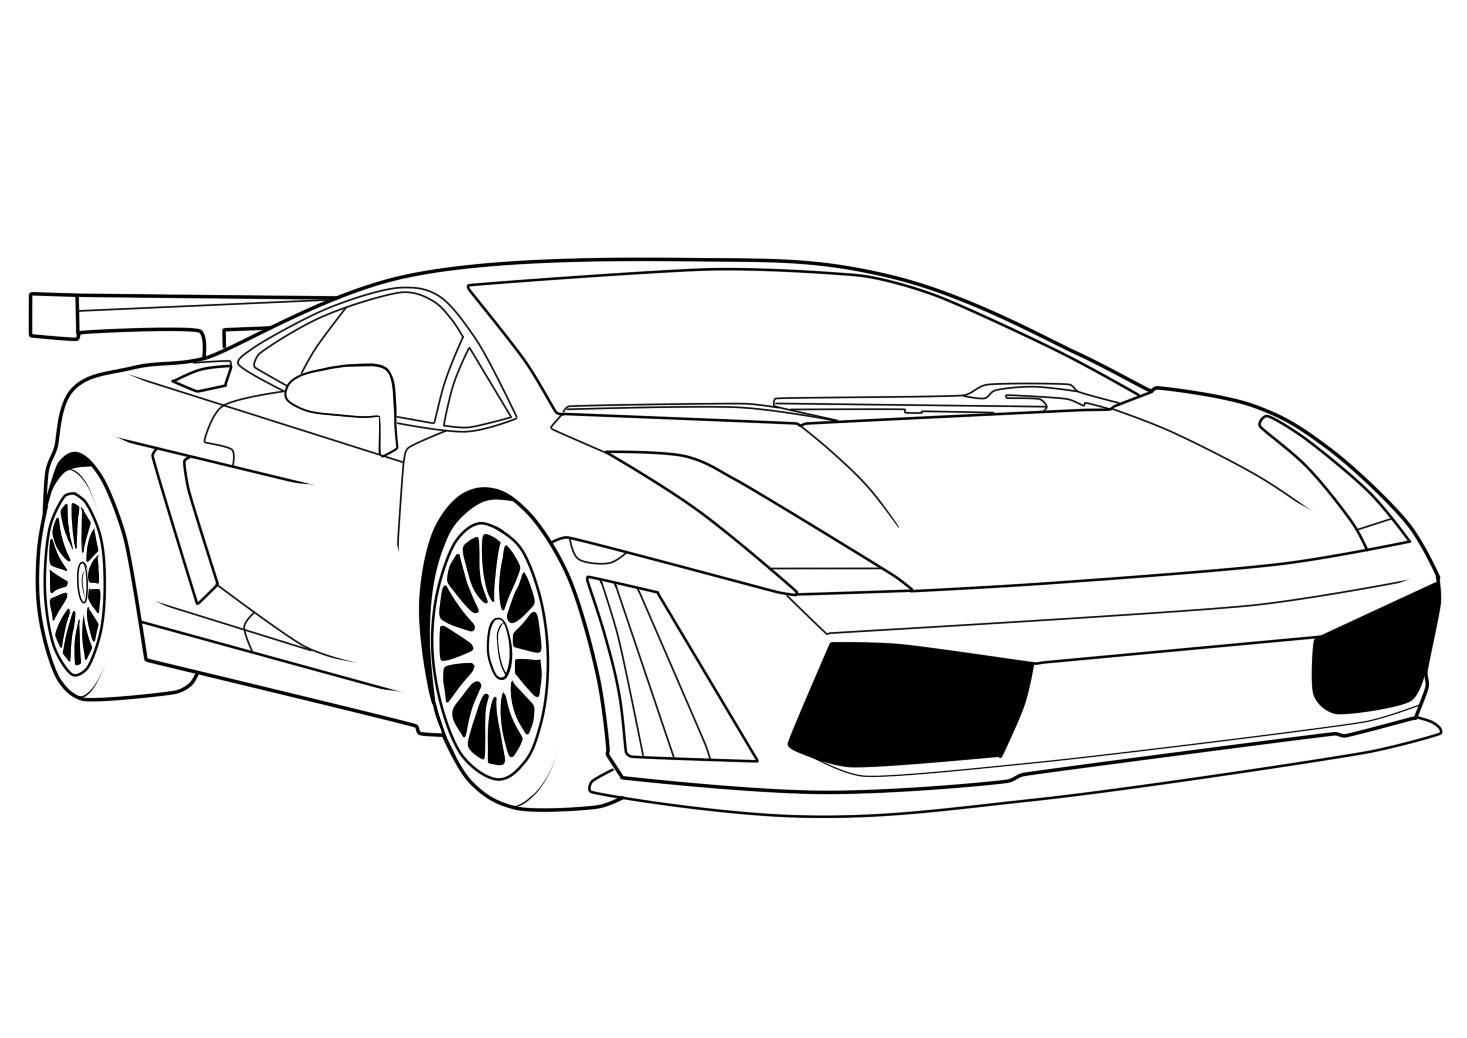 pictures to colour in of cars 10 car coloring sheets sports muscle racing cars and colour to of pictures in cars